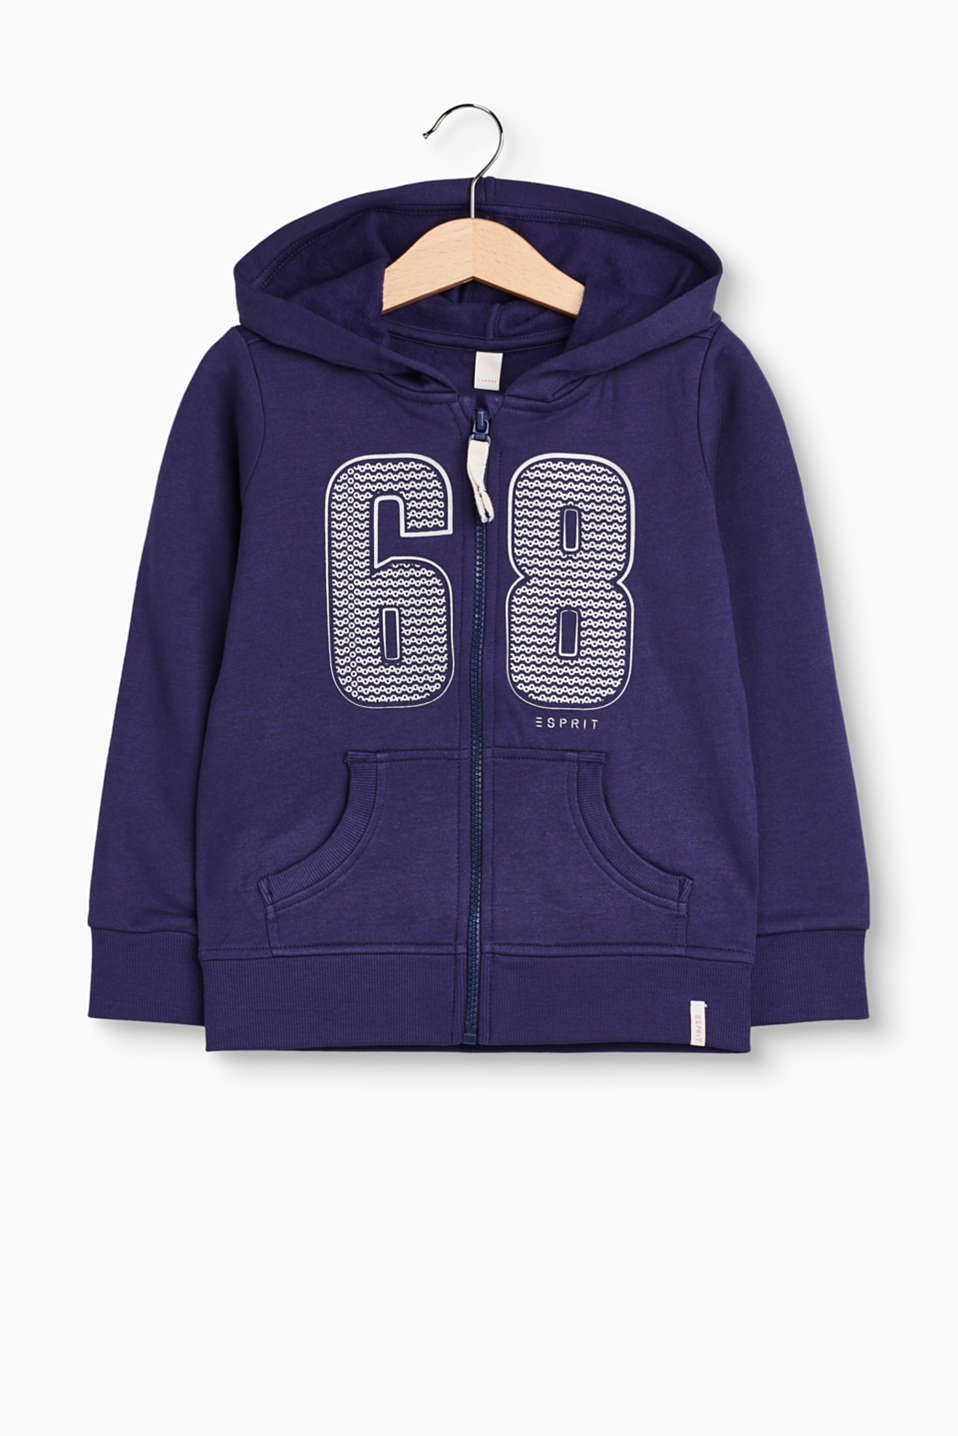 Just for girls! This cool hoodie decorated with a shimmering logo is an absolute must-have!